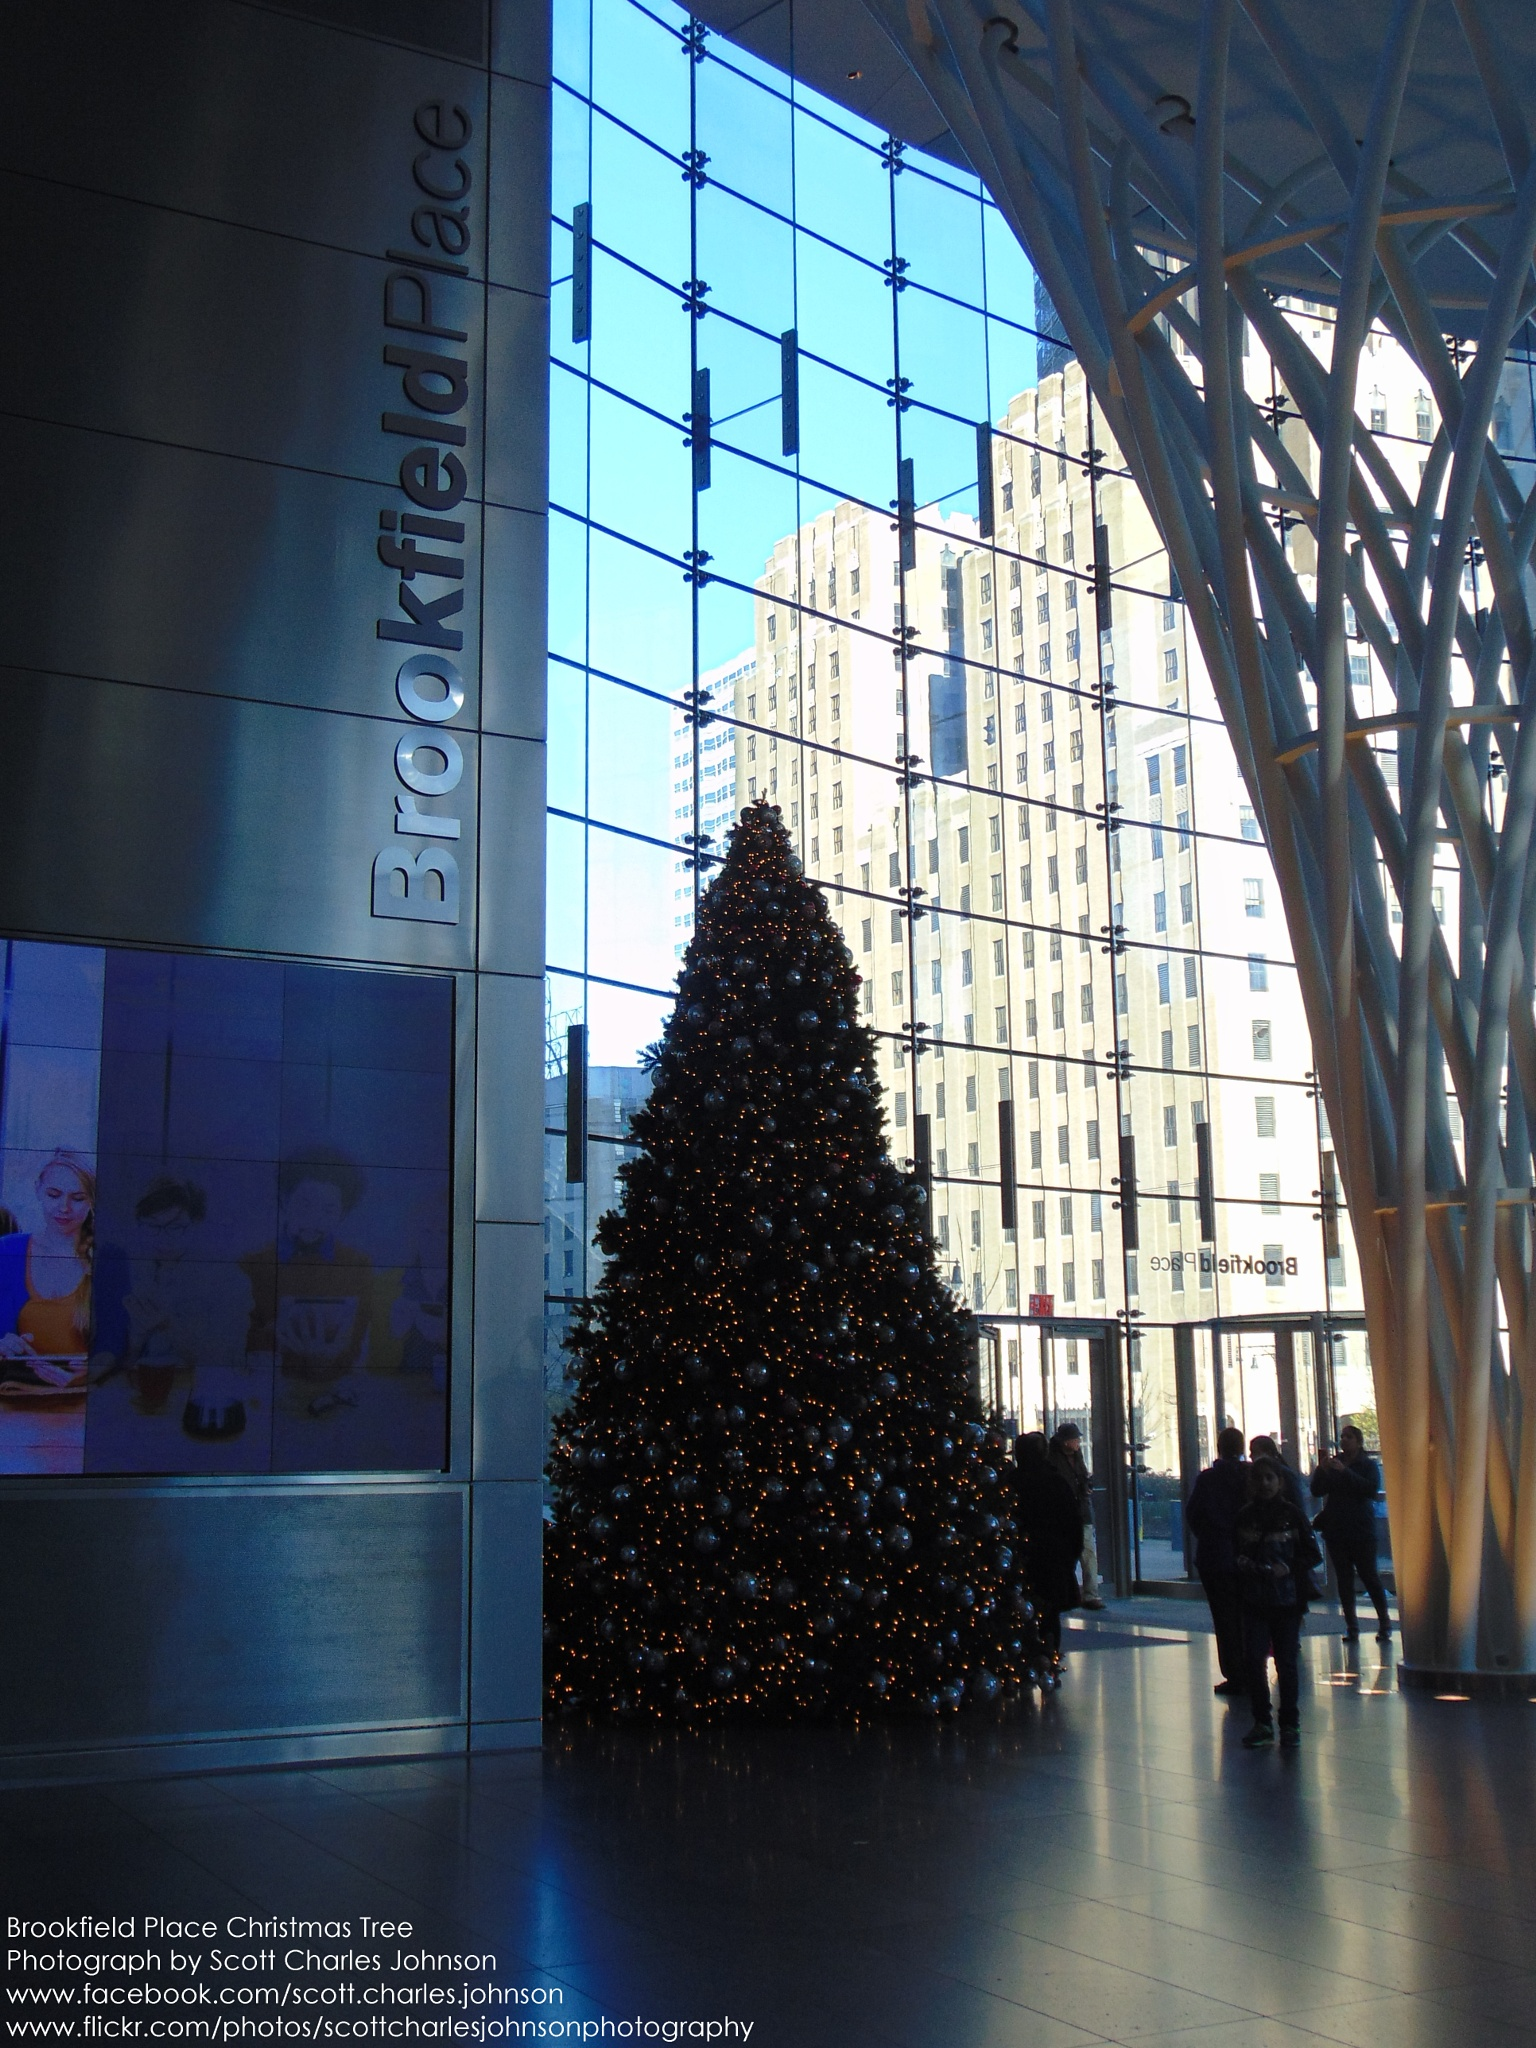 Brookfield Place Christmas Tree by Scott Charles Johnson